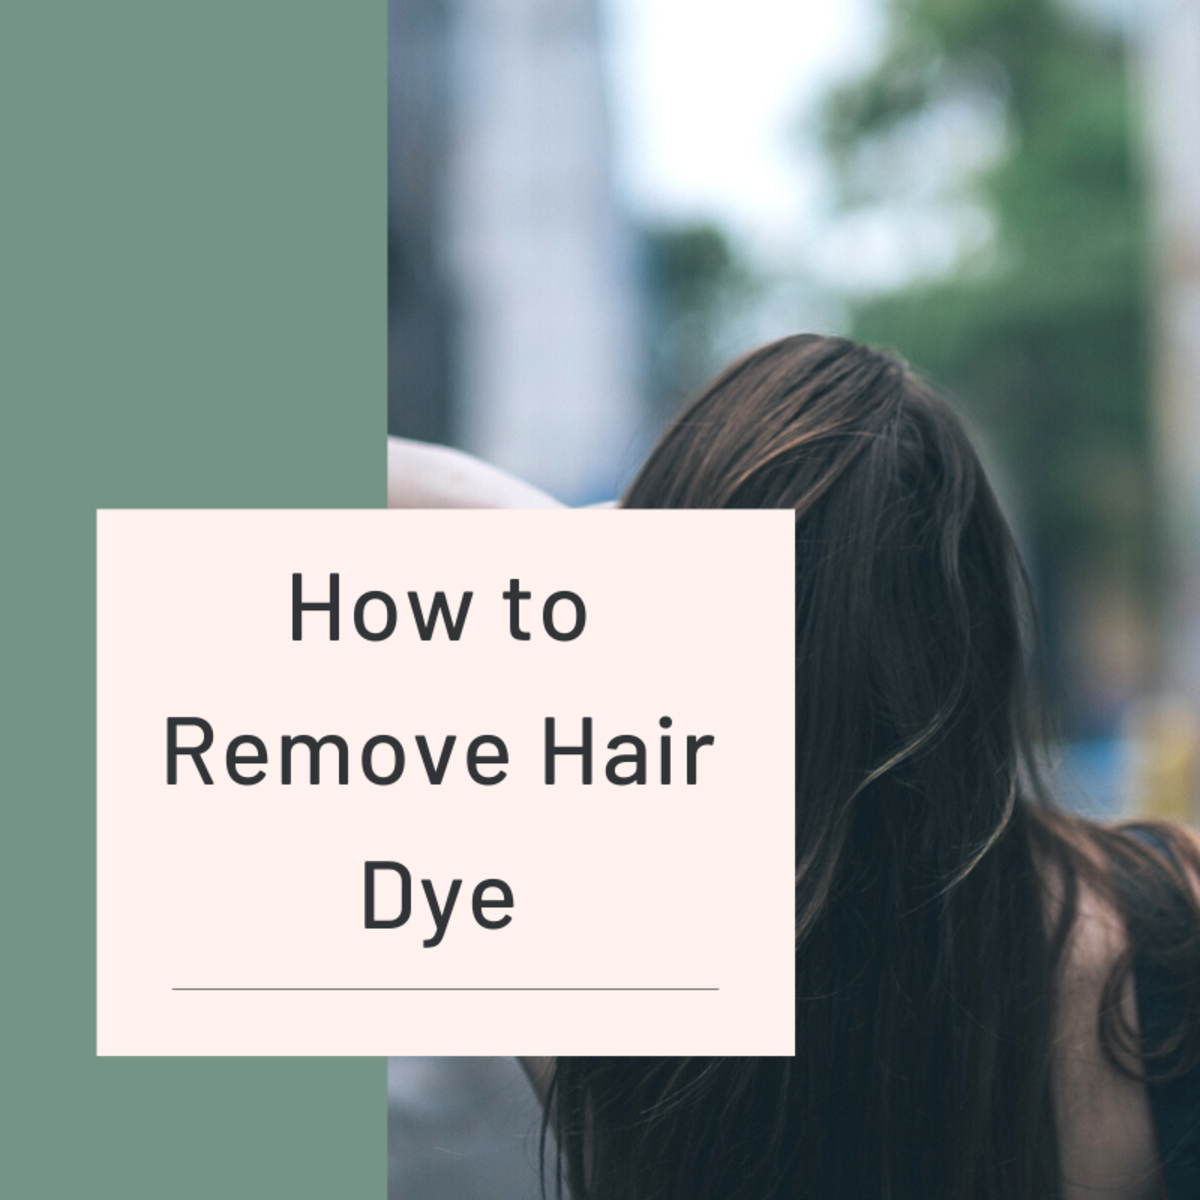 If you're trying to change your look, dying your hair is one of the quickest ways, but removing can be tricky.